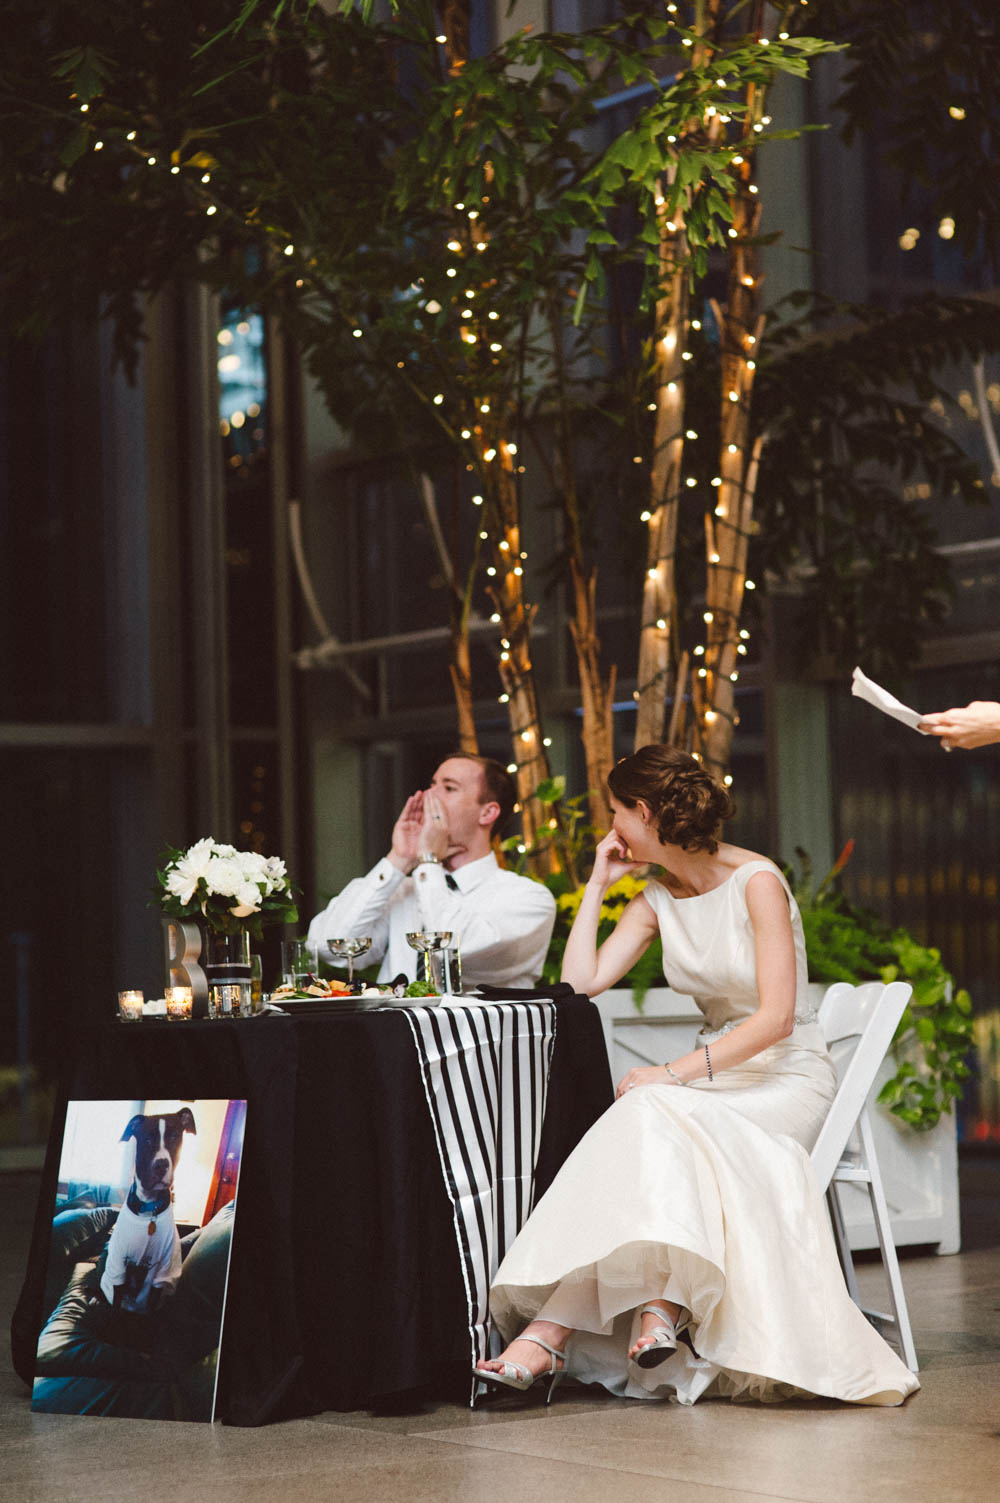 wintergarden-wedding-pittsburgh-131.jpg